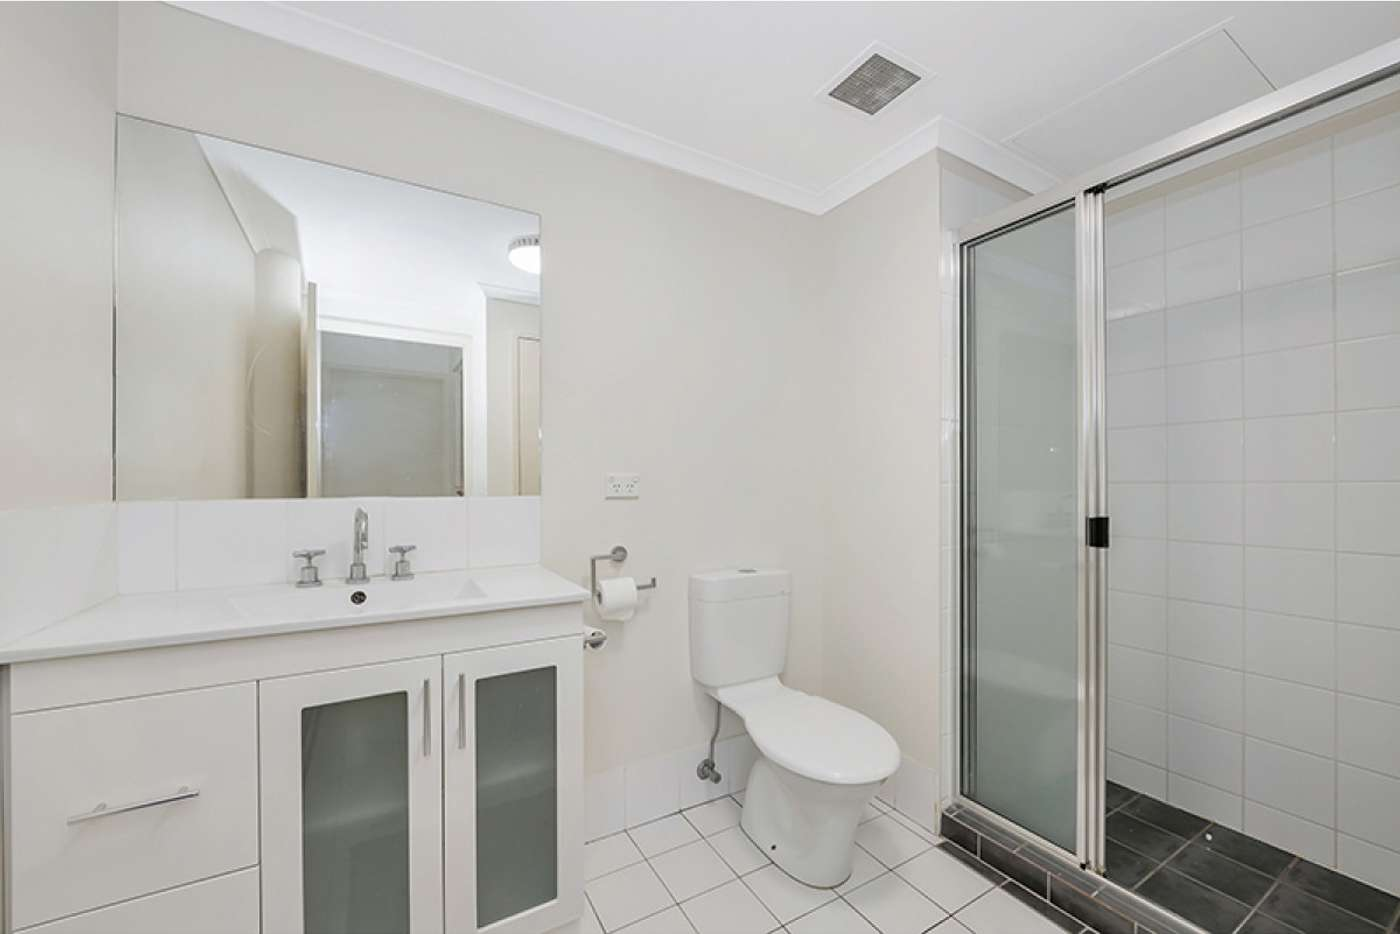 Seventh view of Homely apartment listing, 1A/7 The Strand, North Ward QLD 4810